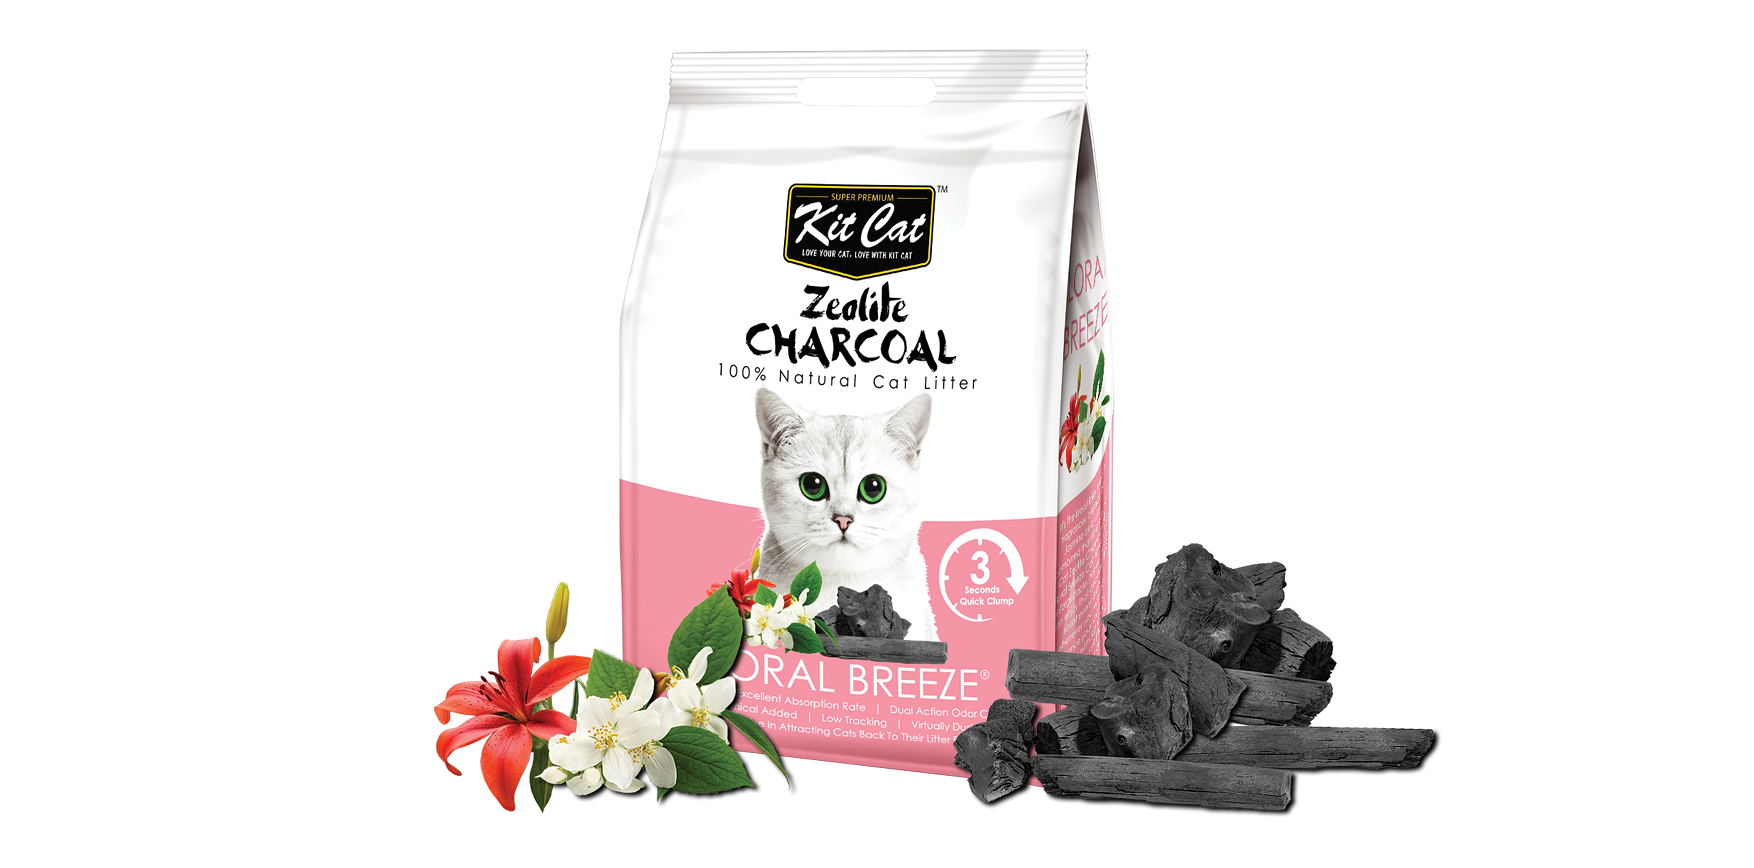 KitCat Zeolite Charcoal Cat Litter Floral Breeze 4kg